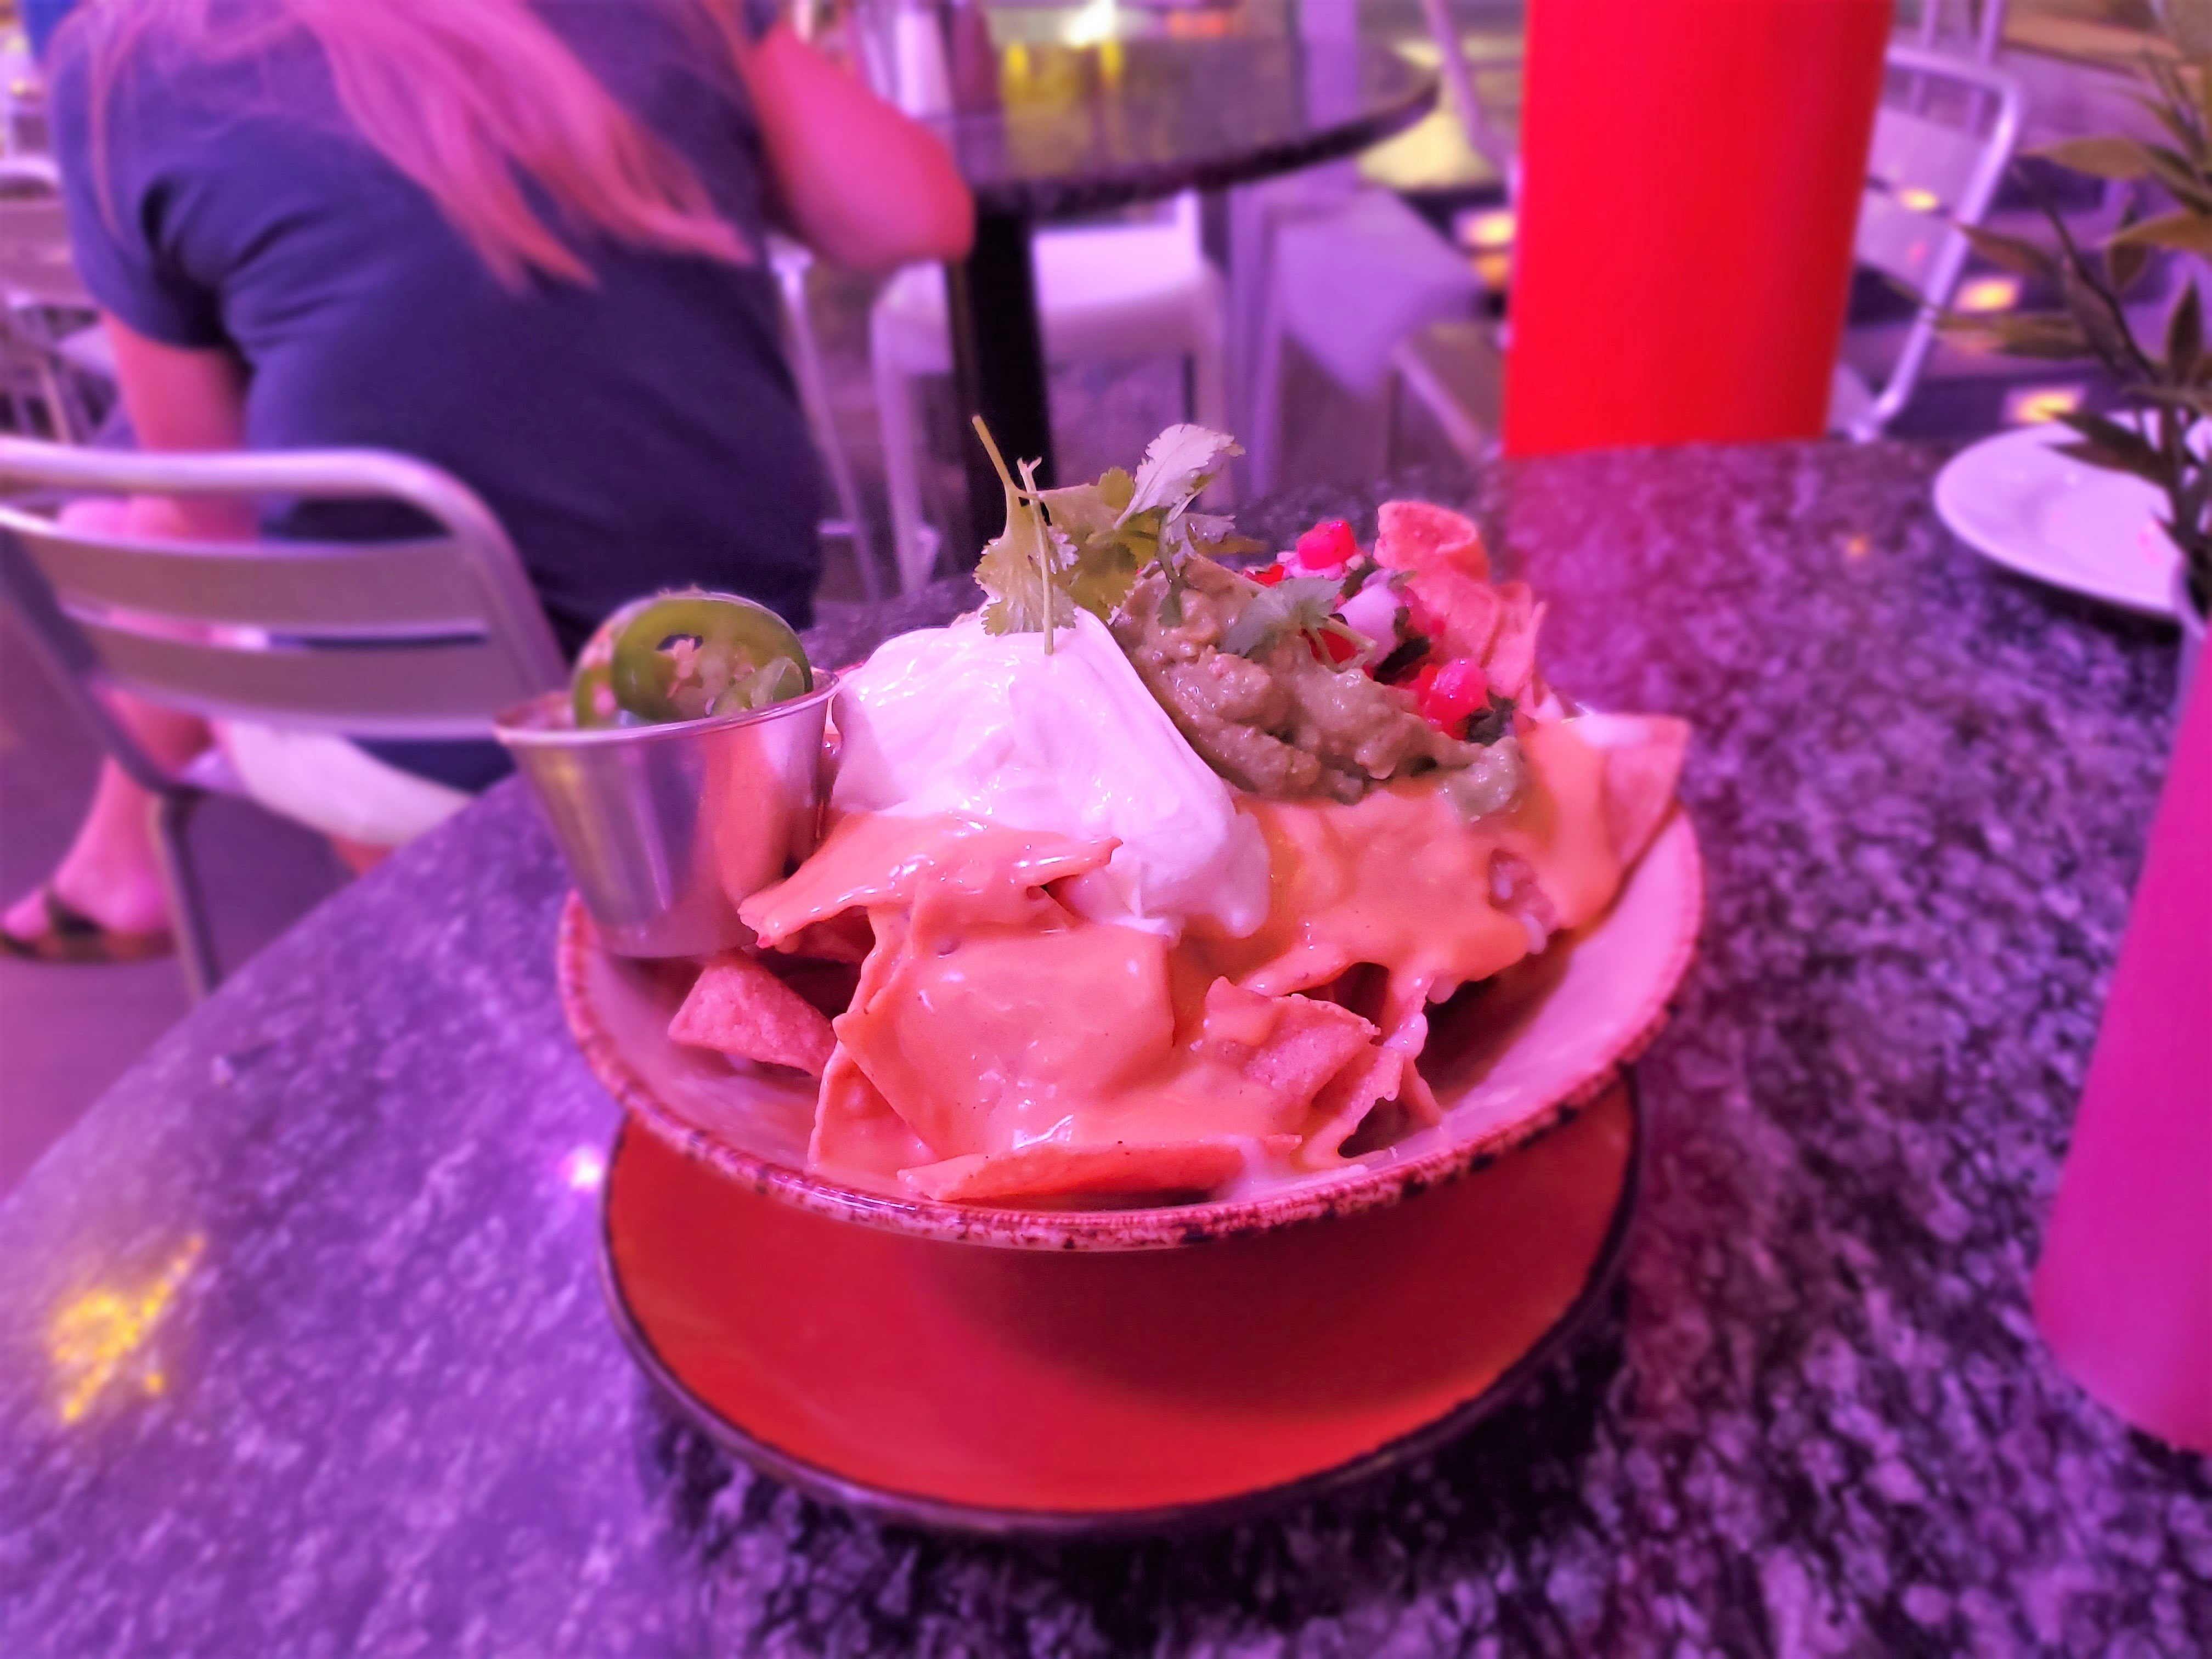 Nachos at Strip Burger